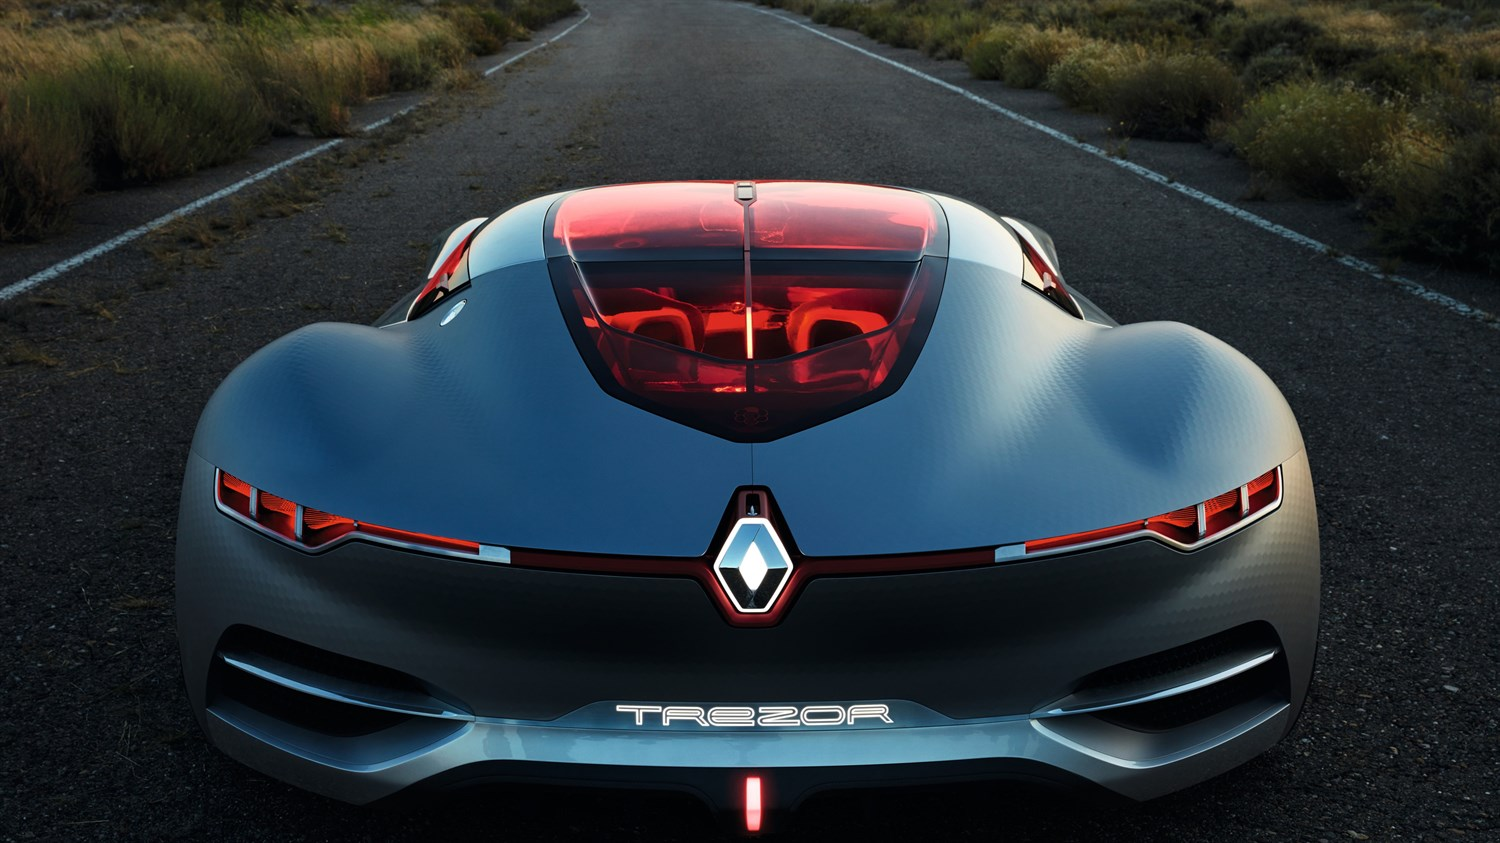 Renault TREZOR concept car exterior design back view